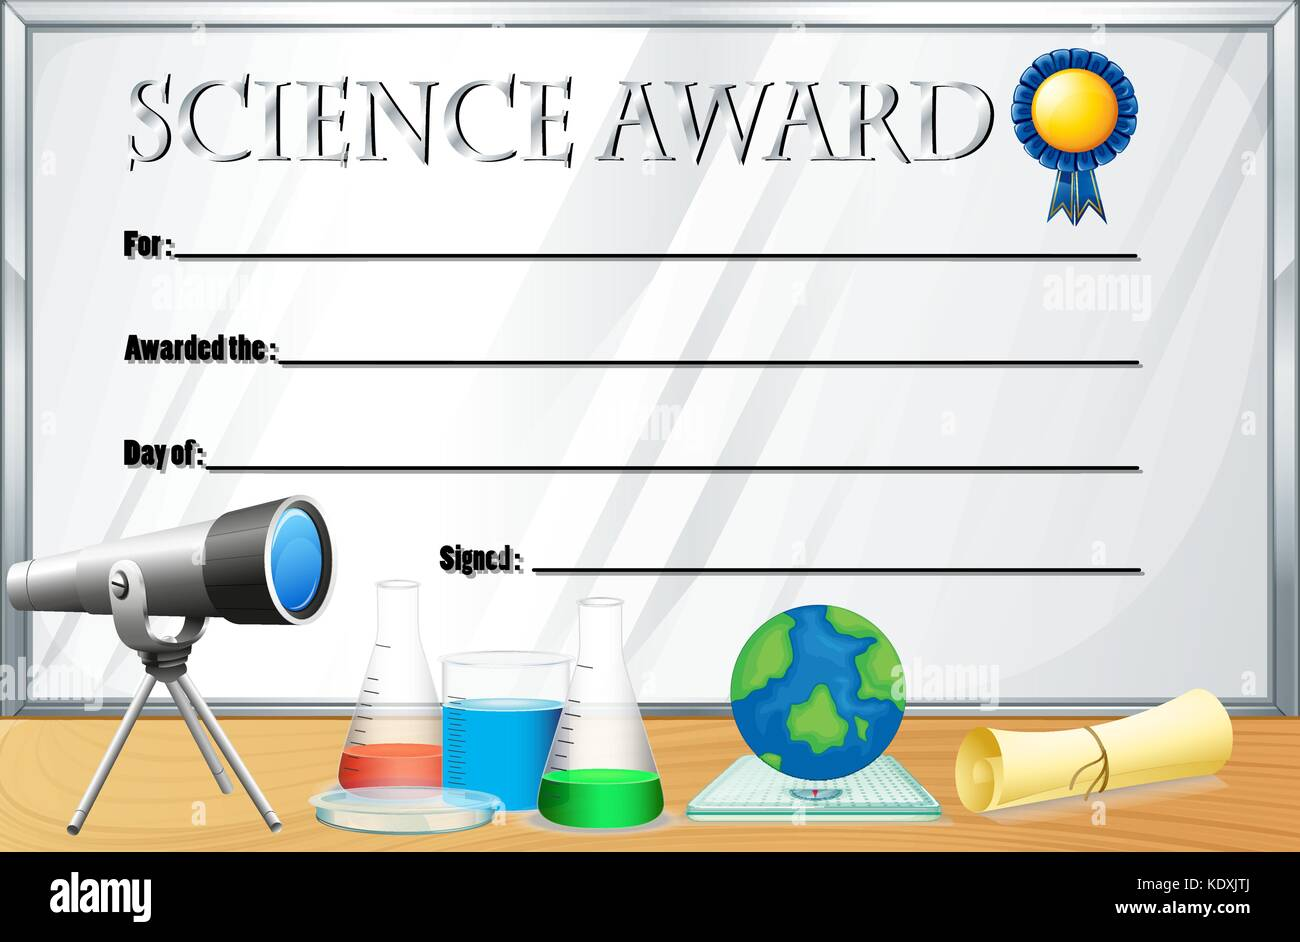 Certificate template for science award illustration stock vector art certificate template for science award illustration yelopaper Choice Image